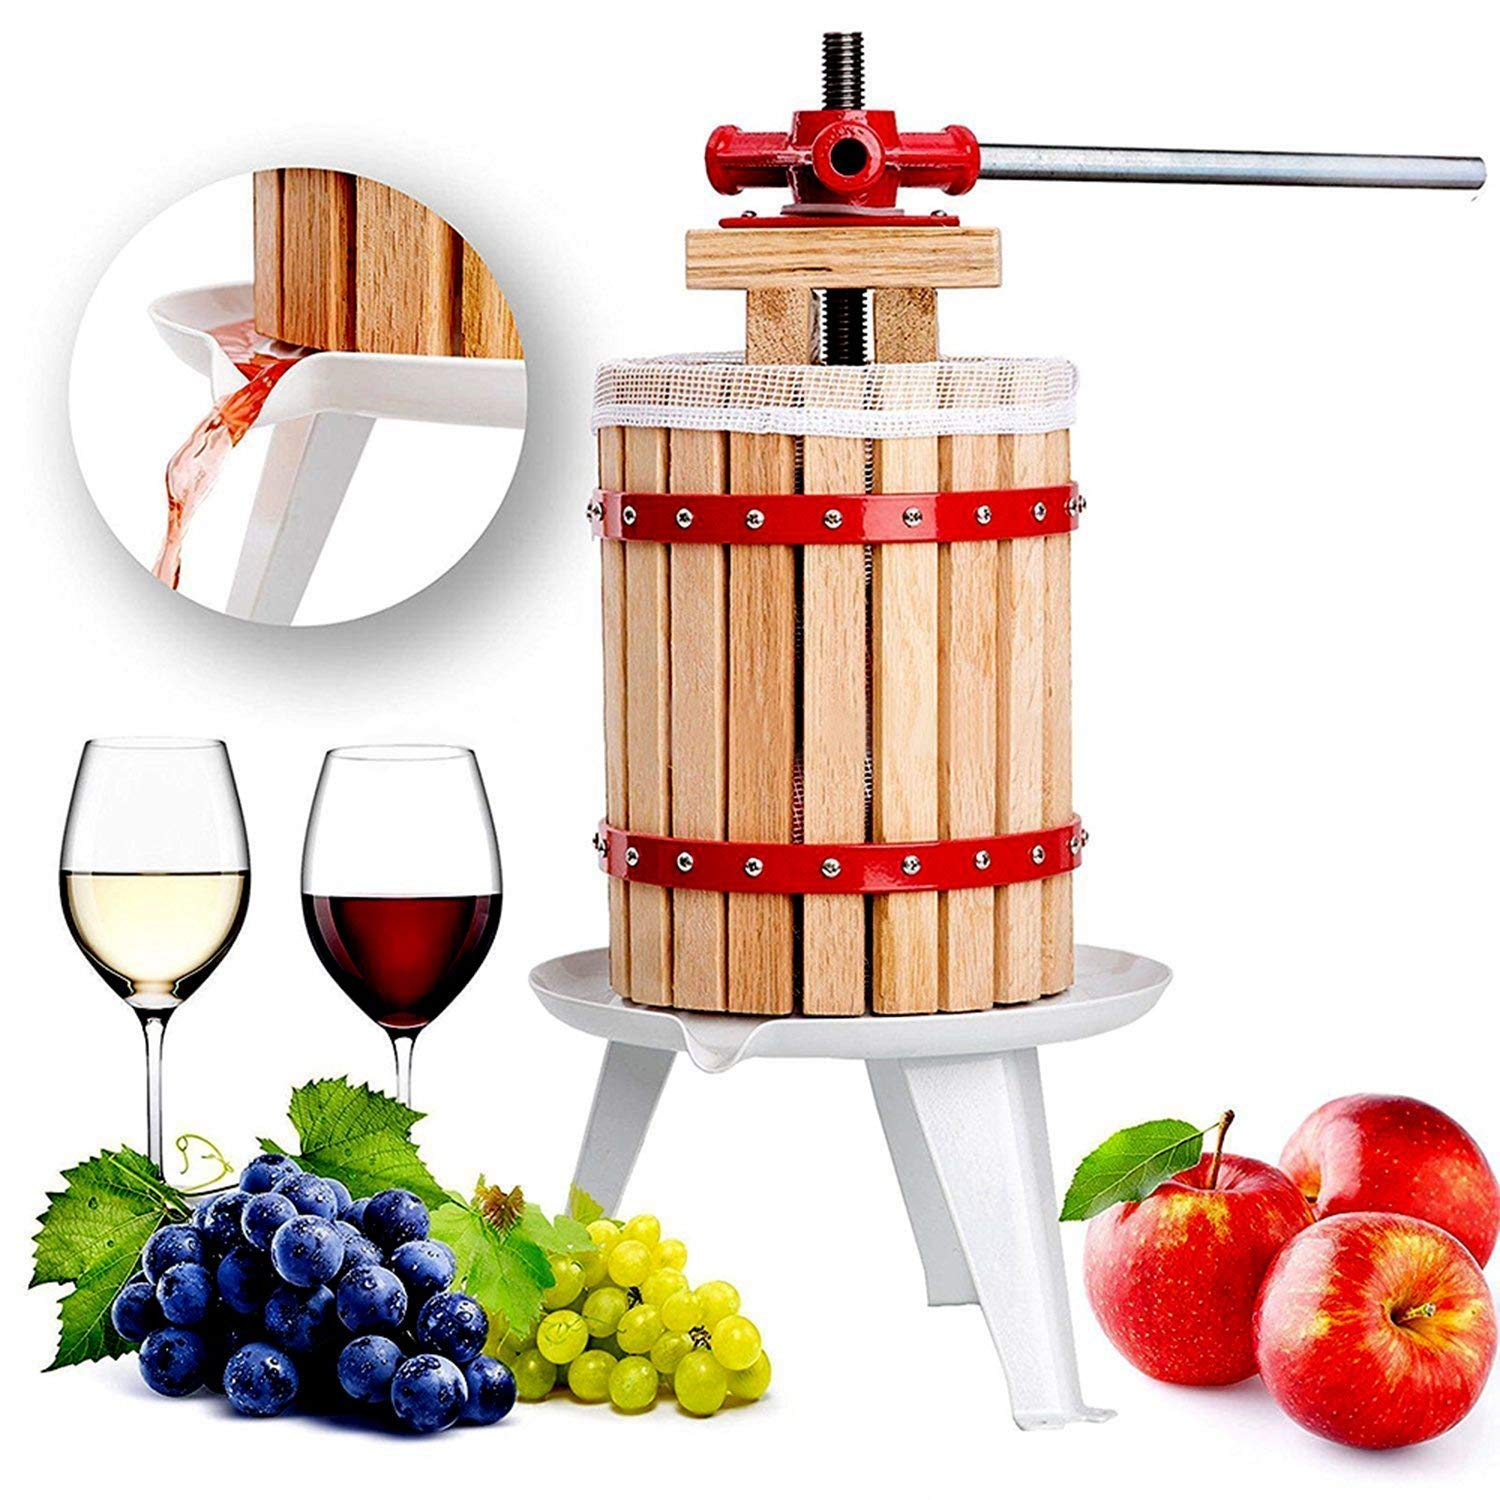 Fruit and Wine Press 4.75 Gallon Cider Apple Grape Crusher Juice Maker Tool Wood by Eelpitha (Image #1)